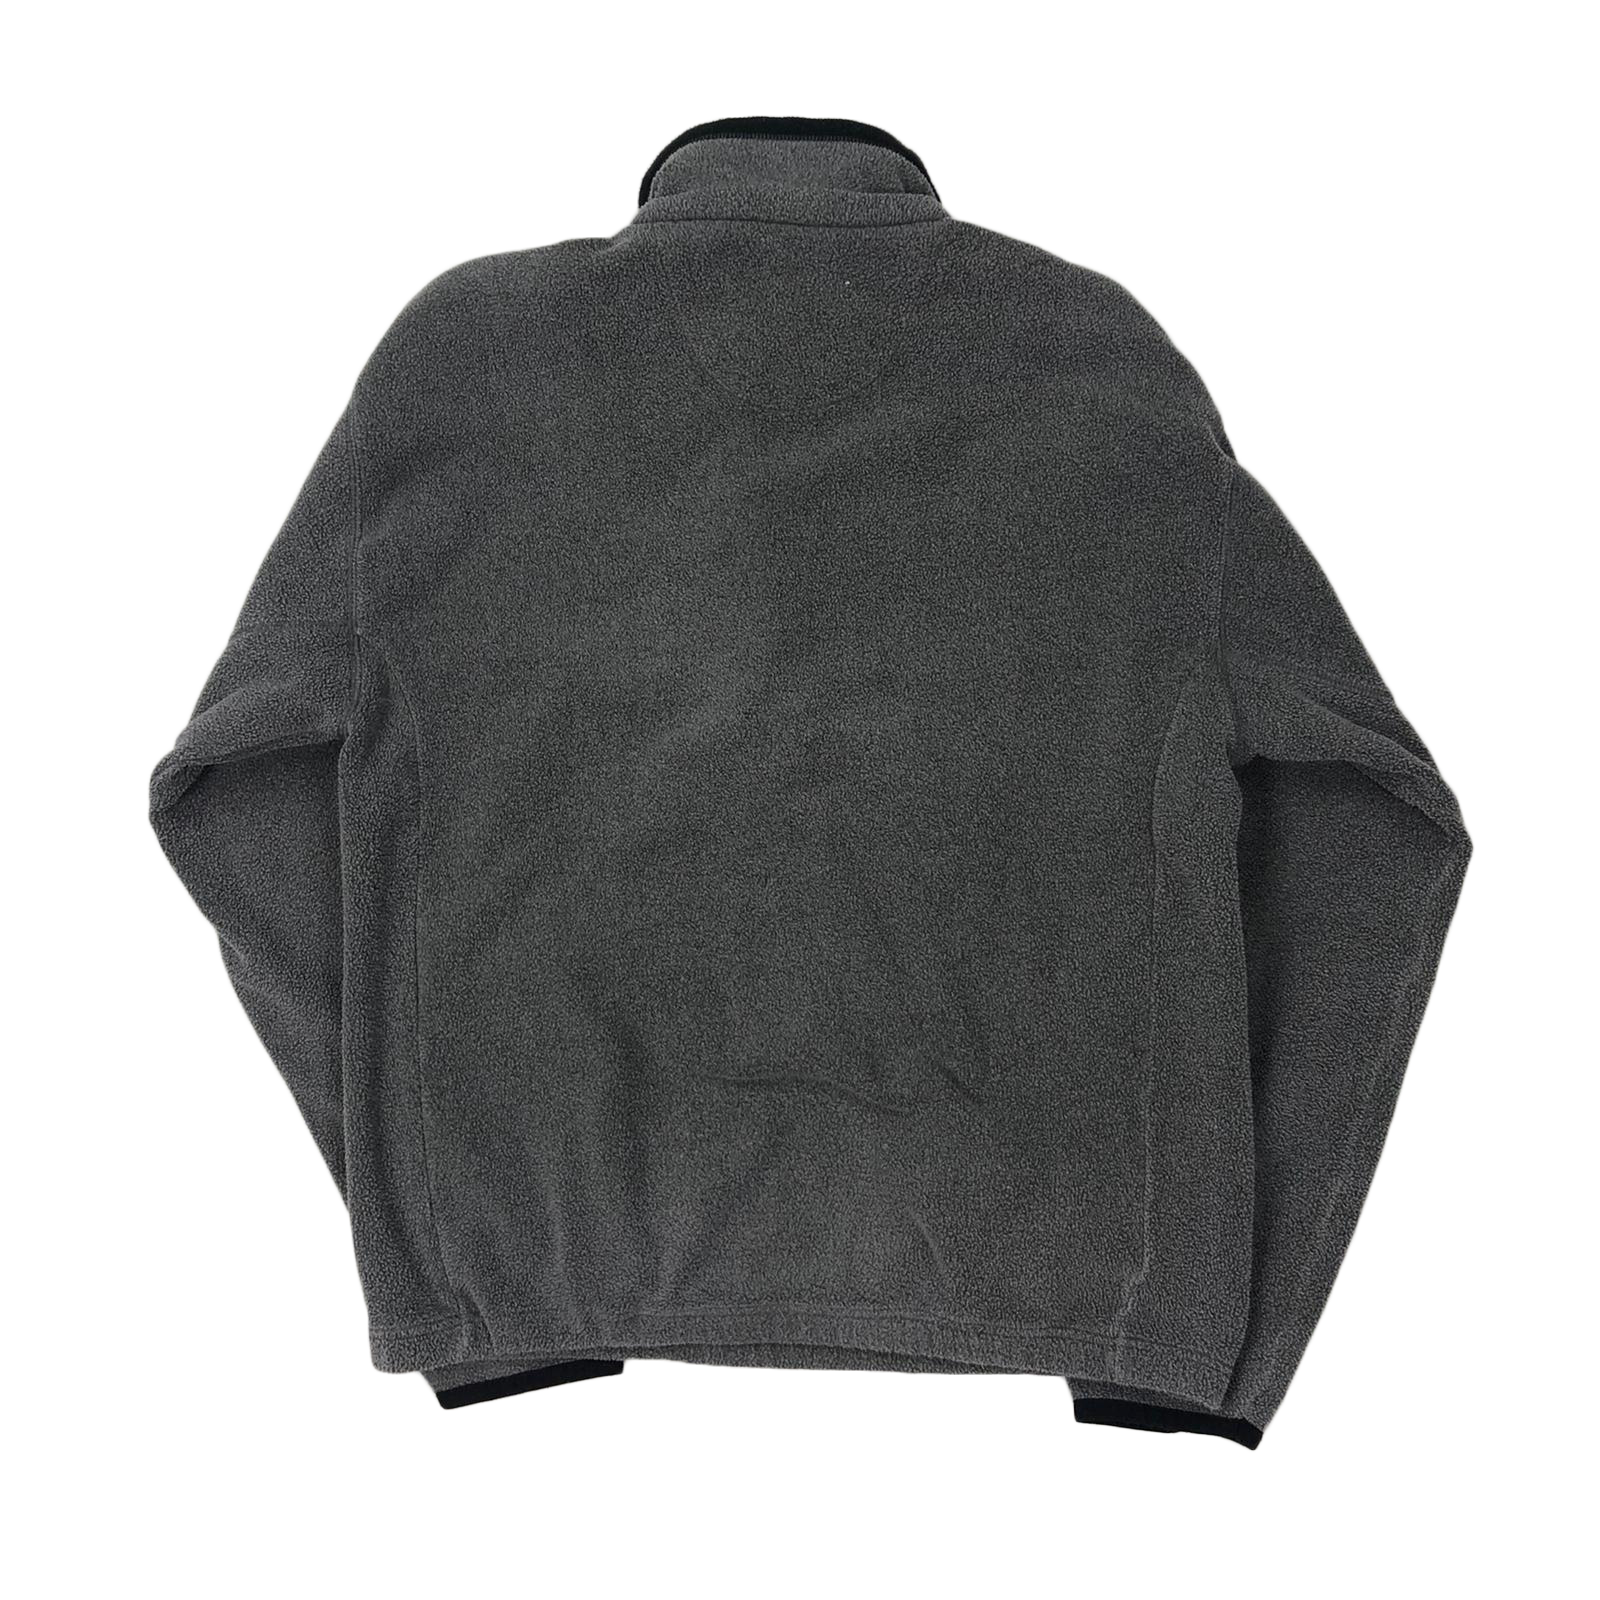 Chaps 1/4 zip fleece